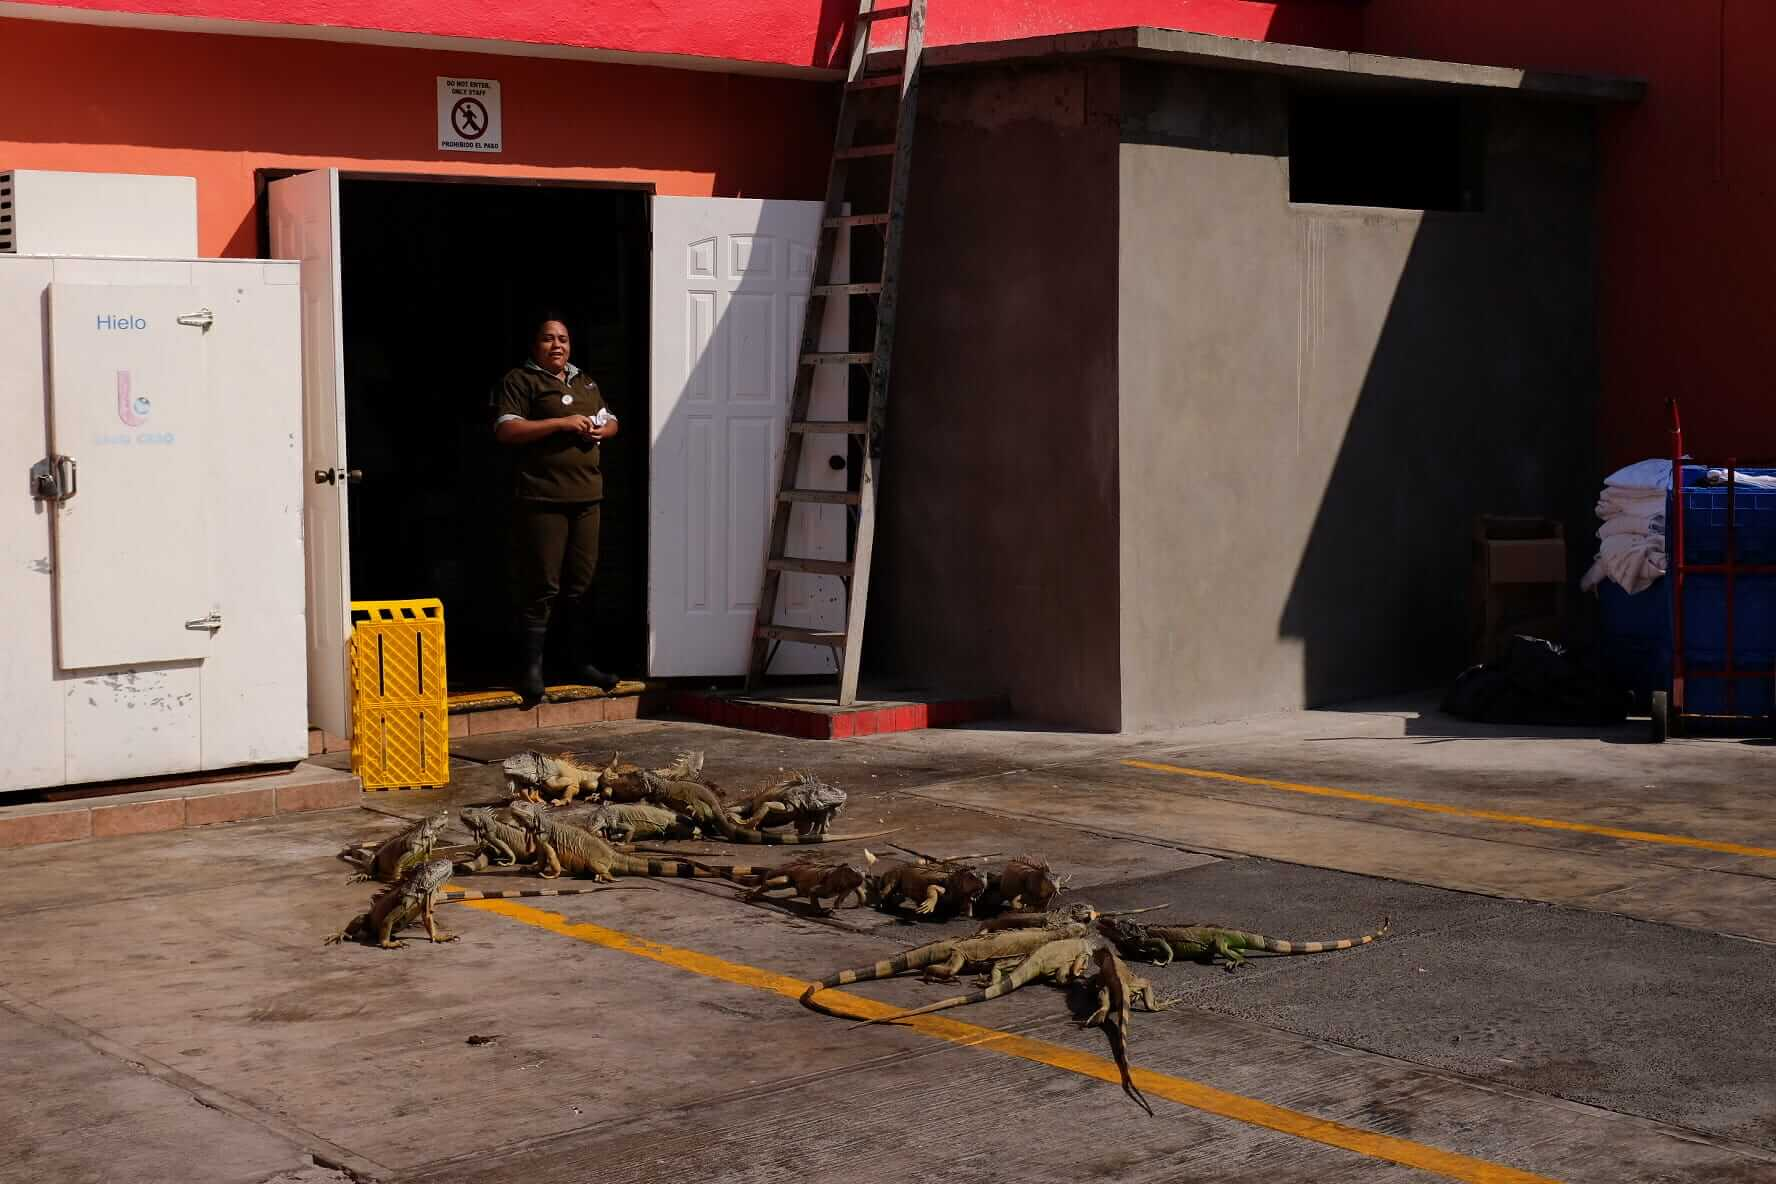 iguanas at the back of the kitchens